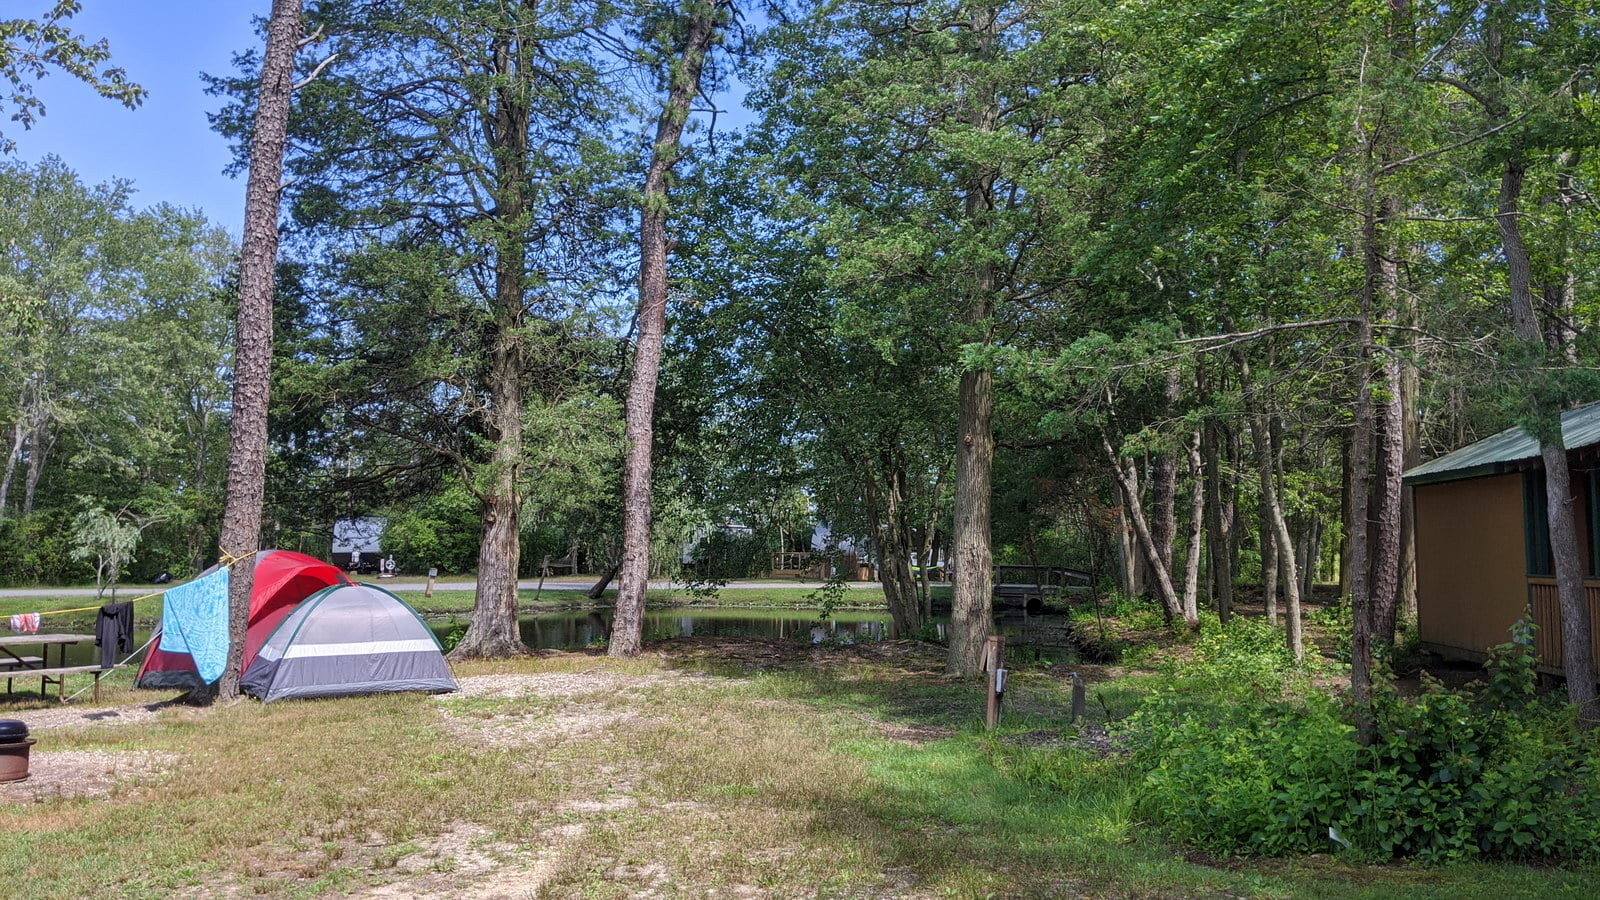 How to Plan for a Father and Son Camping Trip at Sea Pirate Campground